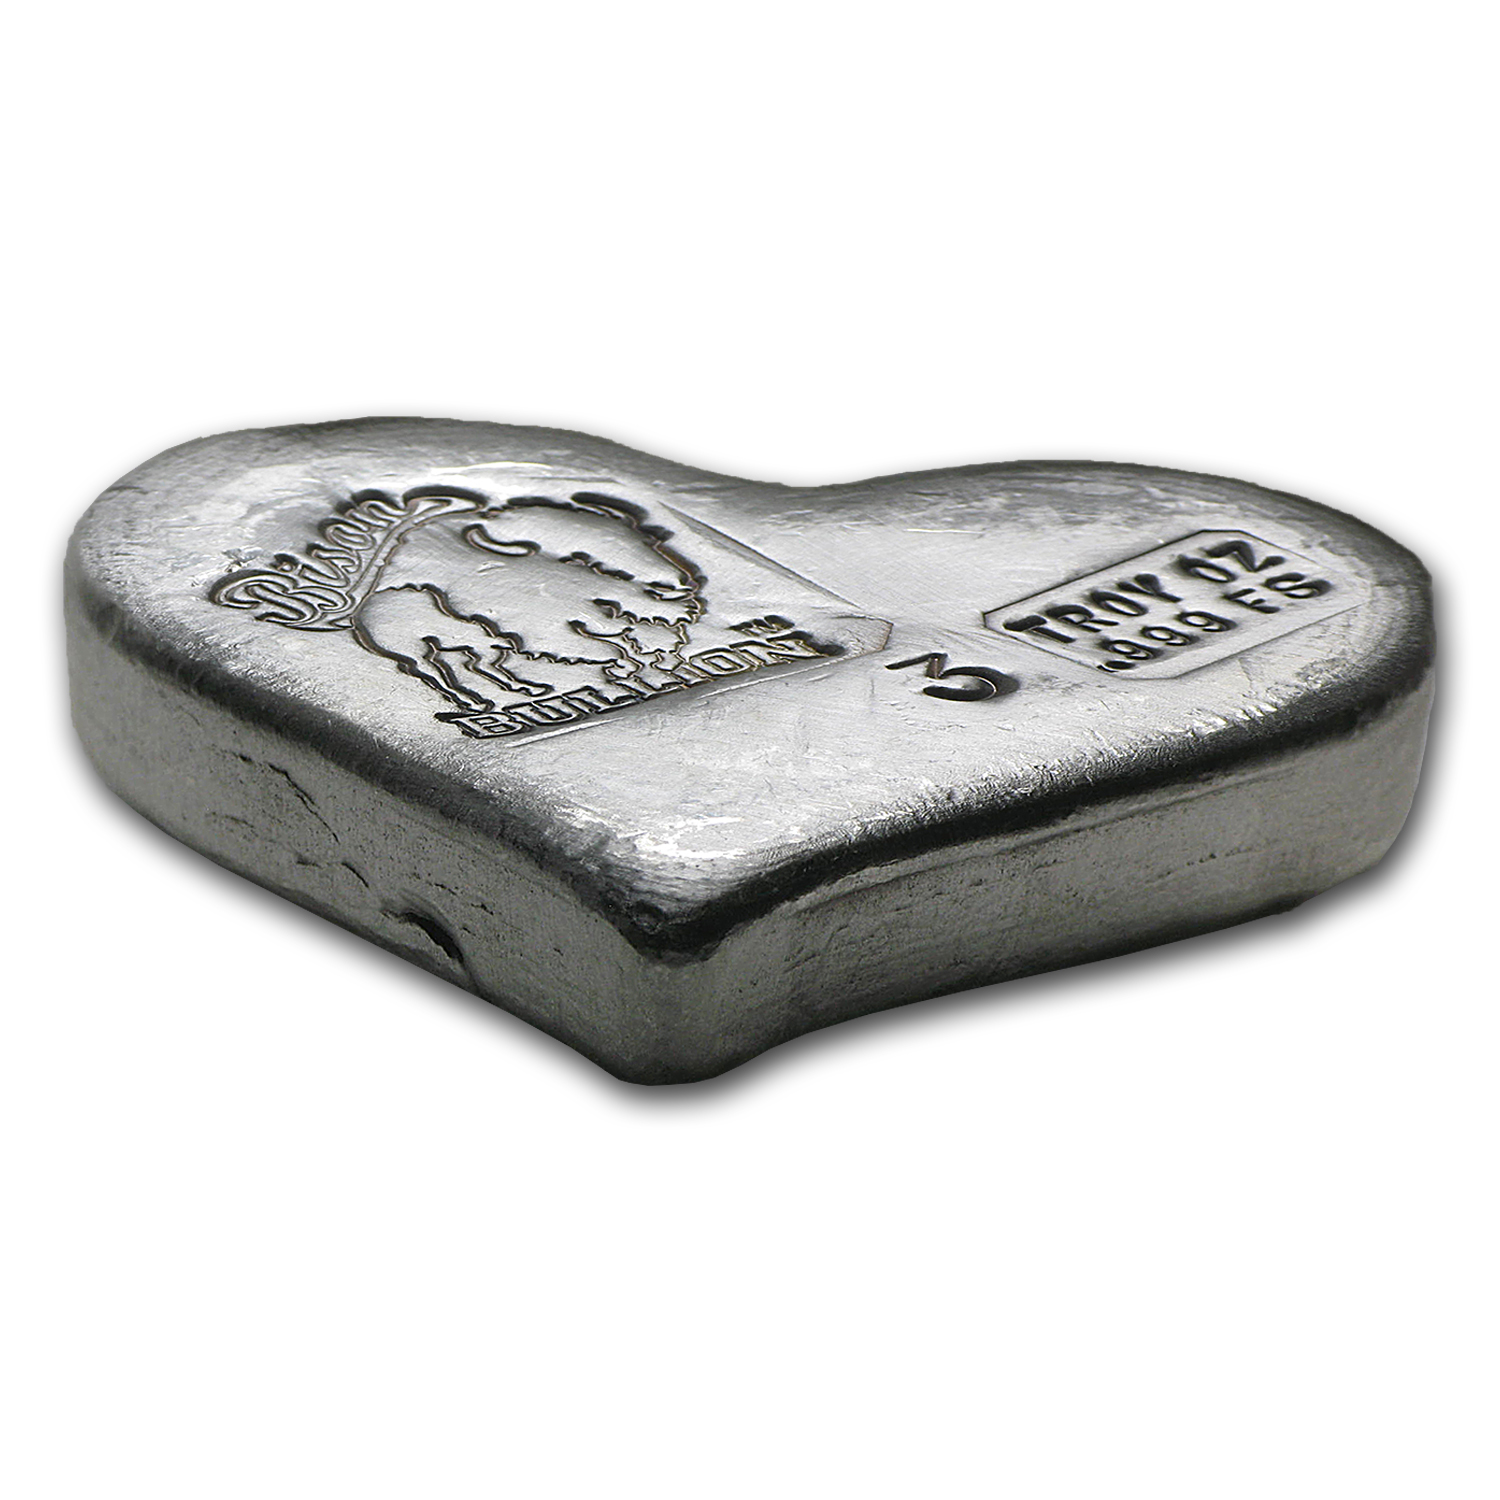 3 oz Silver Hearts - Bison Bullion